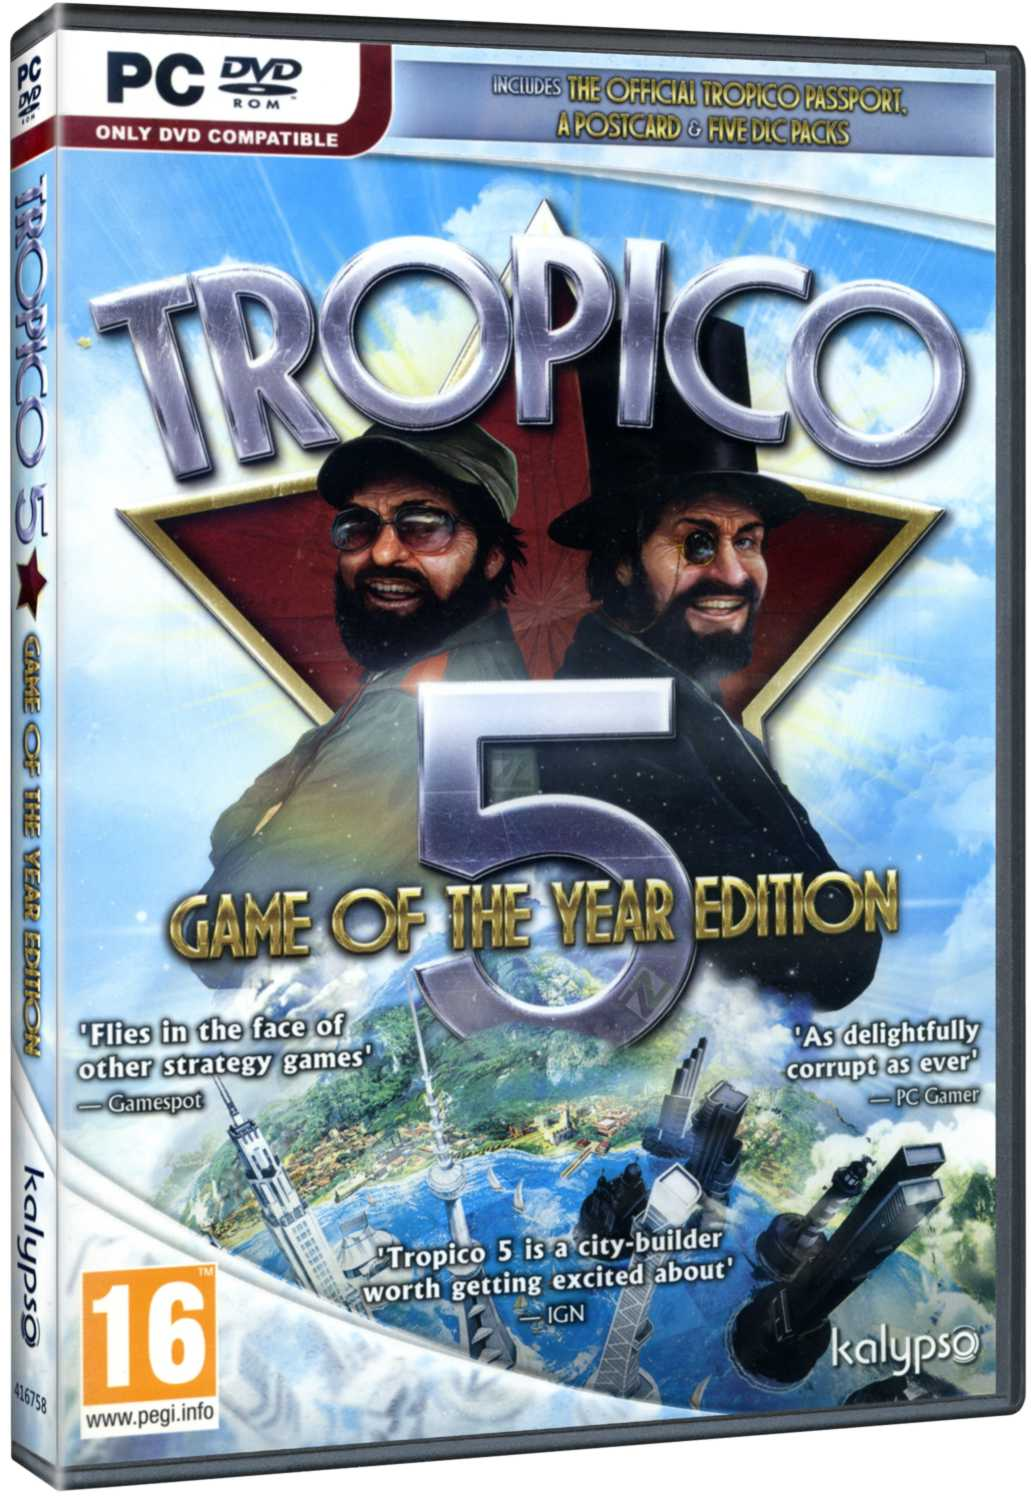 TROPICO 5 (Game of the Year Edition) - PC